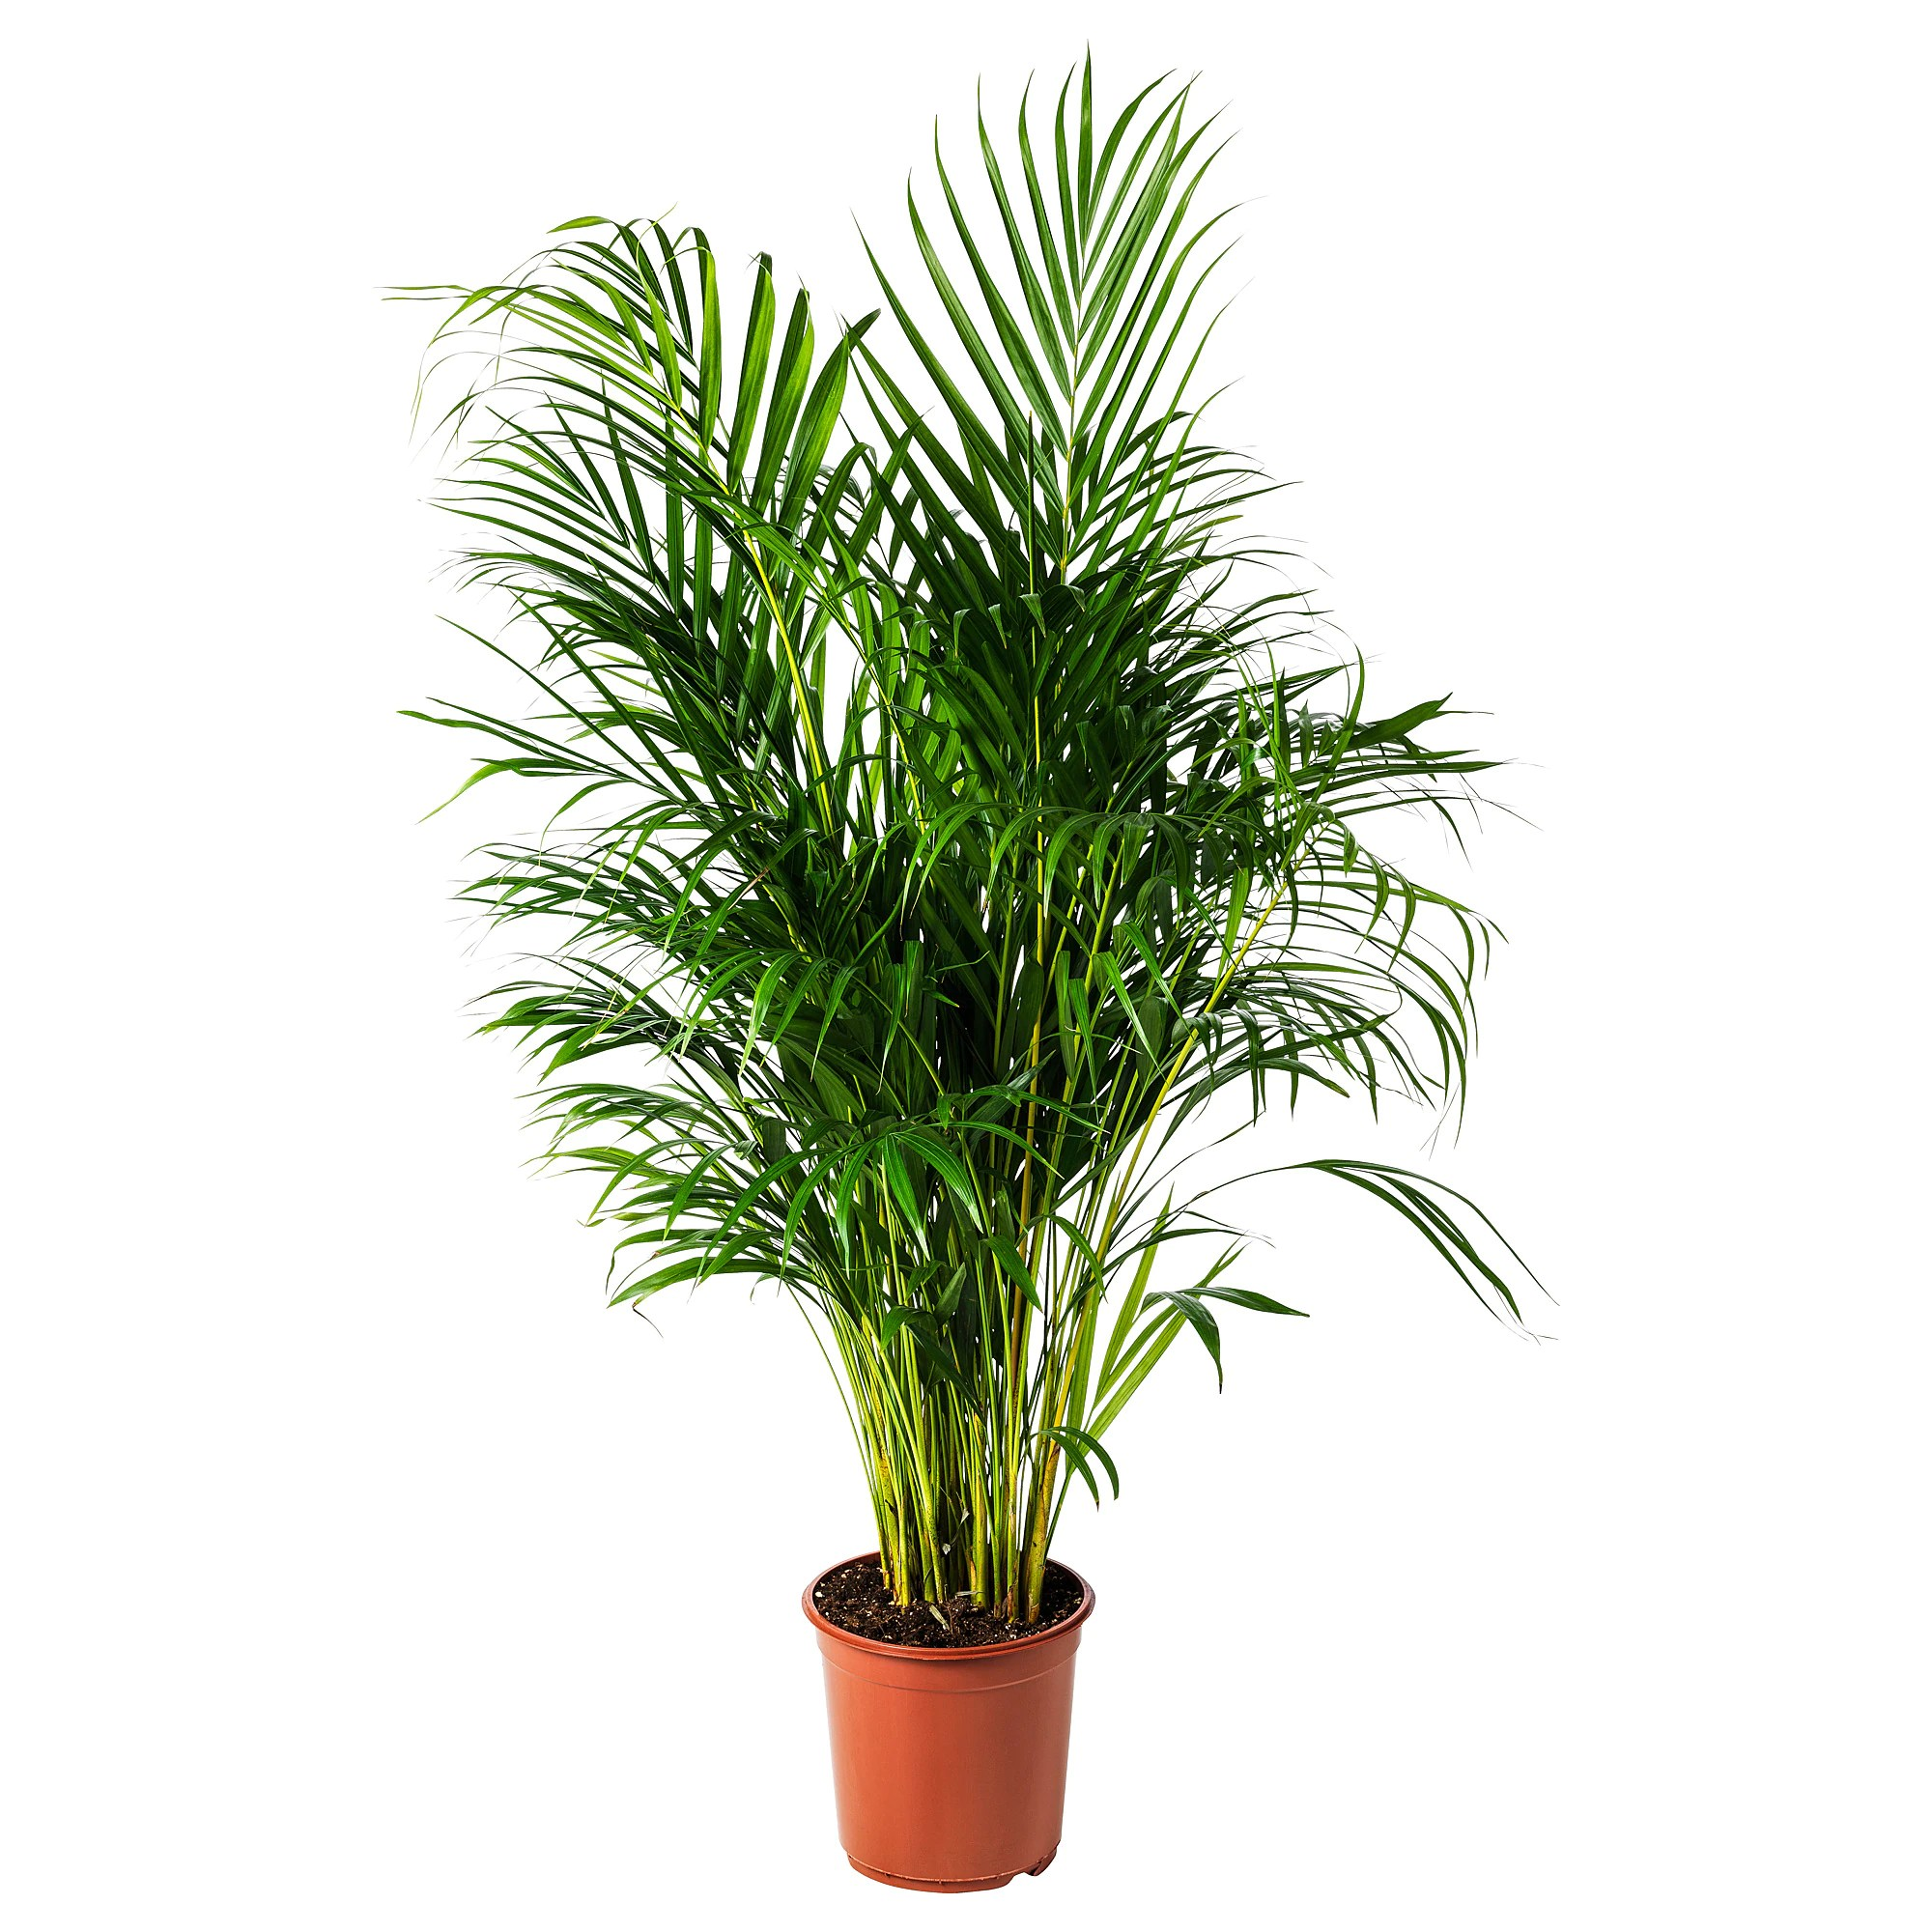 Zamioculcas Pflege Pflanze Dypsis Lutescens Goldfruchtpalme